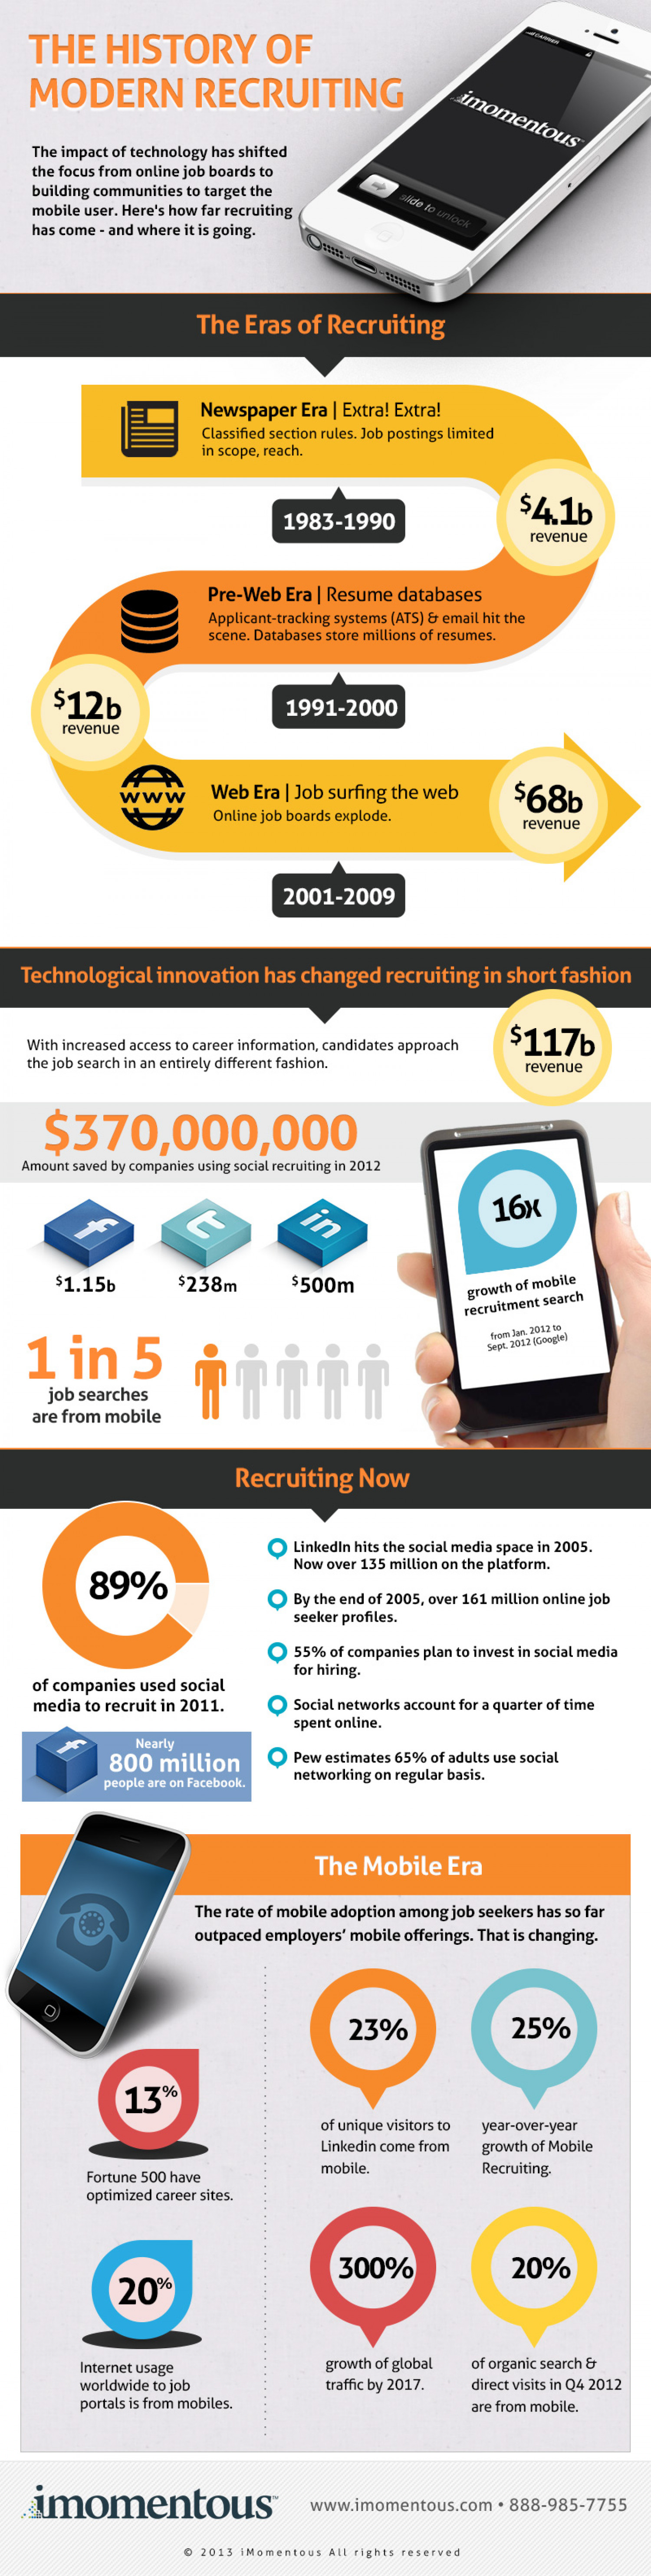 The History of Modern Recruiting Infographic